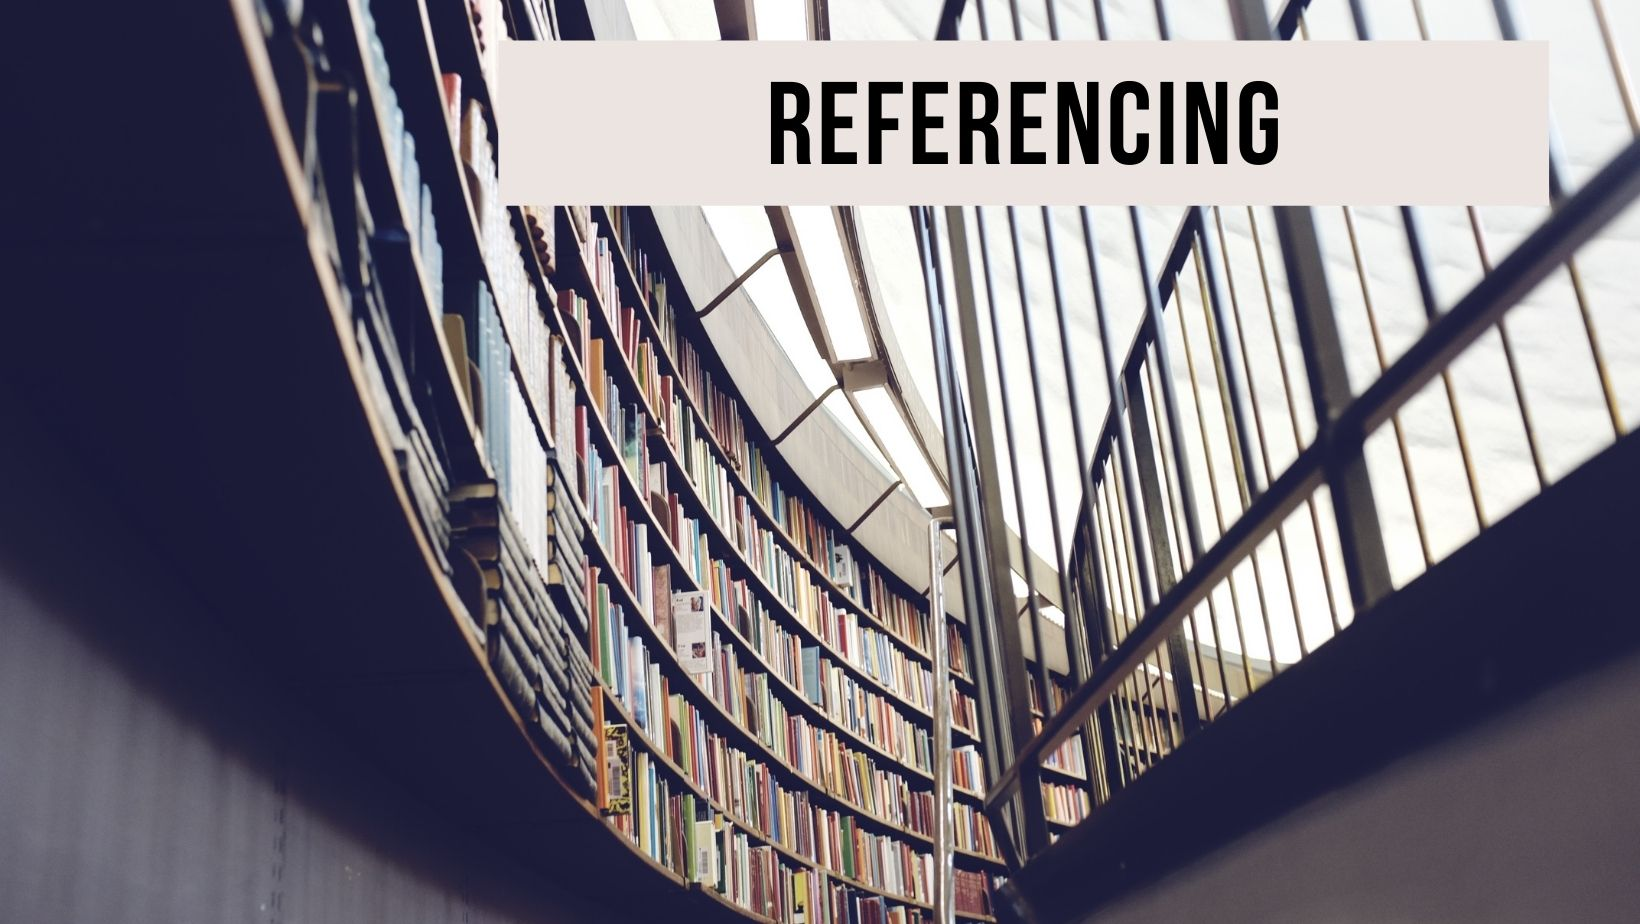 Picture of a library to represent referencing